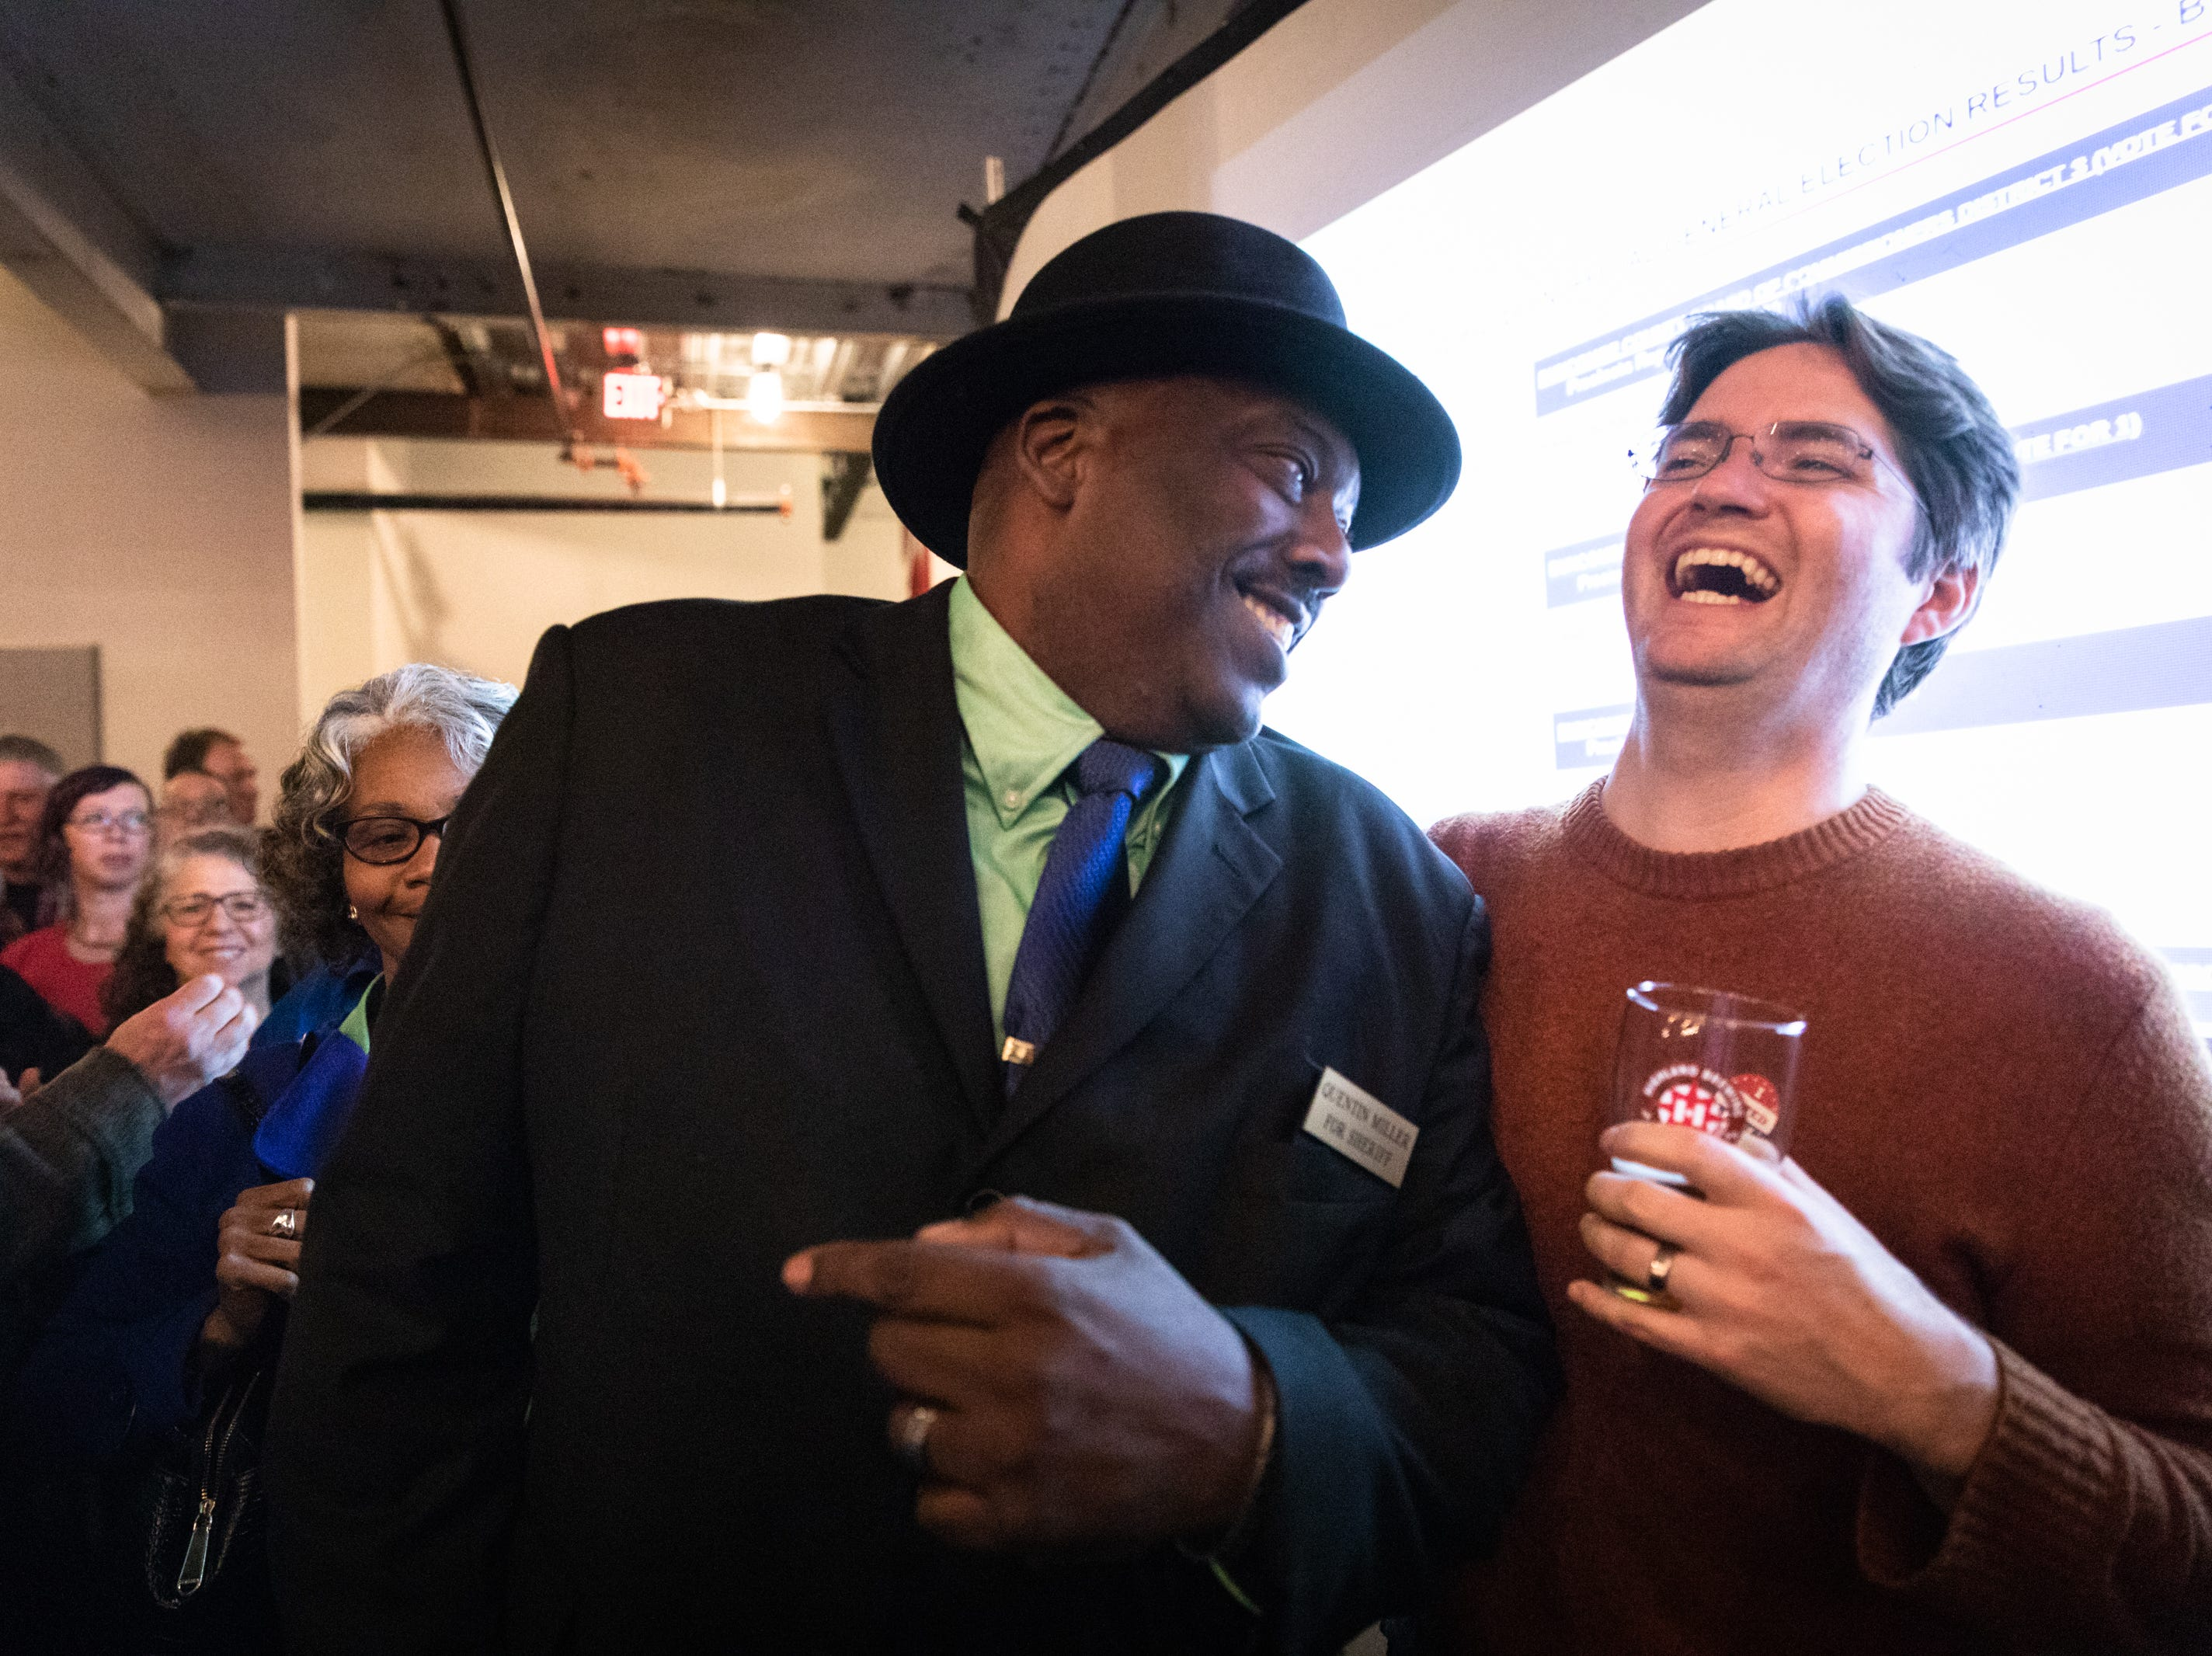 Quentin Miller, newly elected Buncombe County sheriff, is greeted by supporters as he enters the Democratic Party election night party at Highland Brewing Nov. 6, 2018.